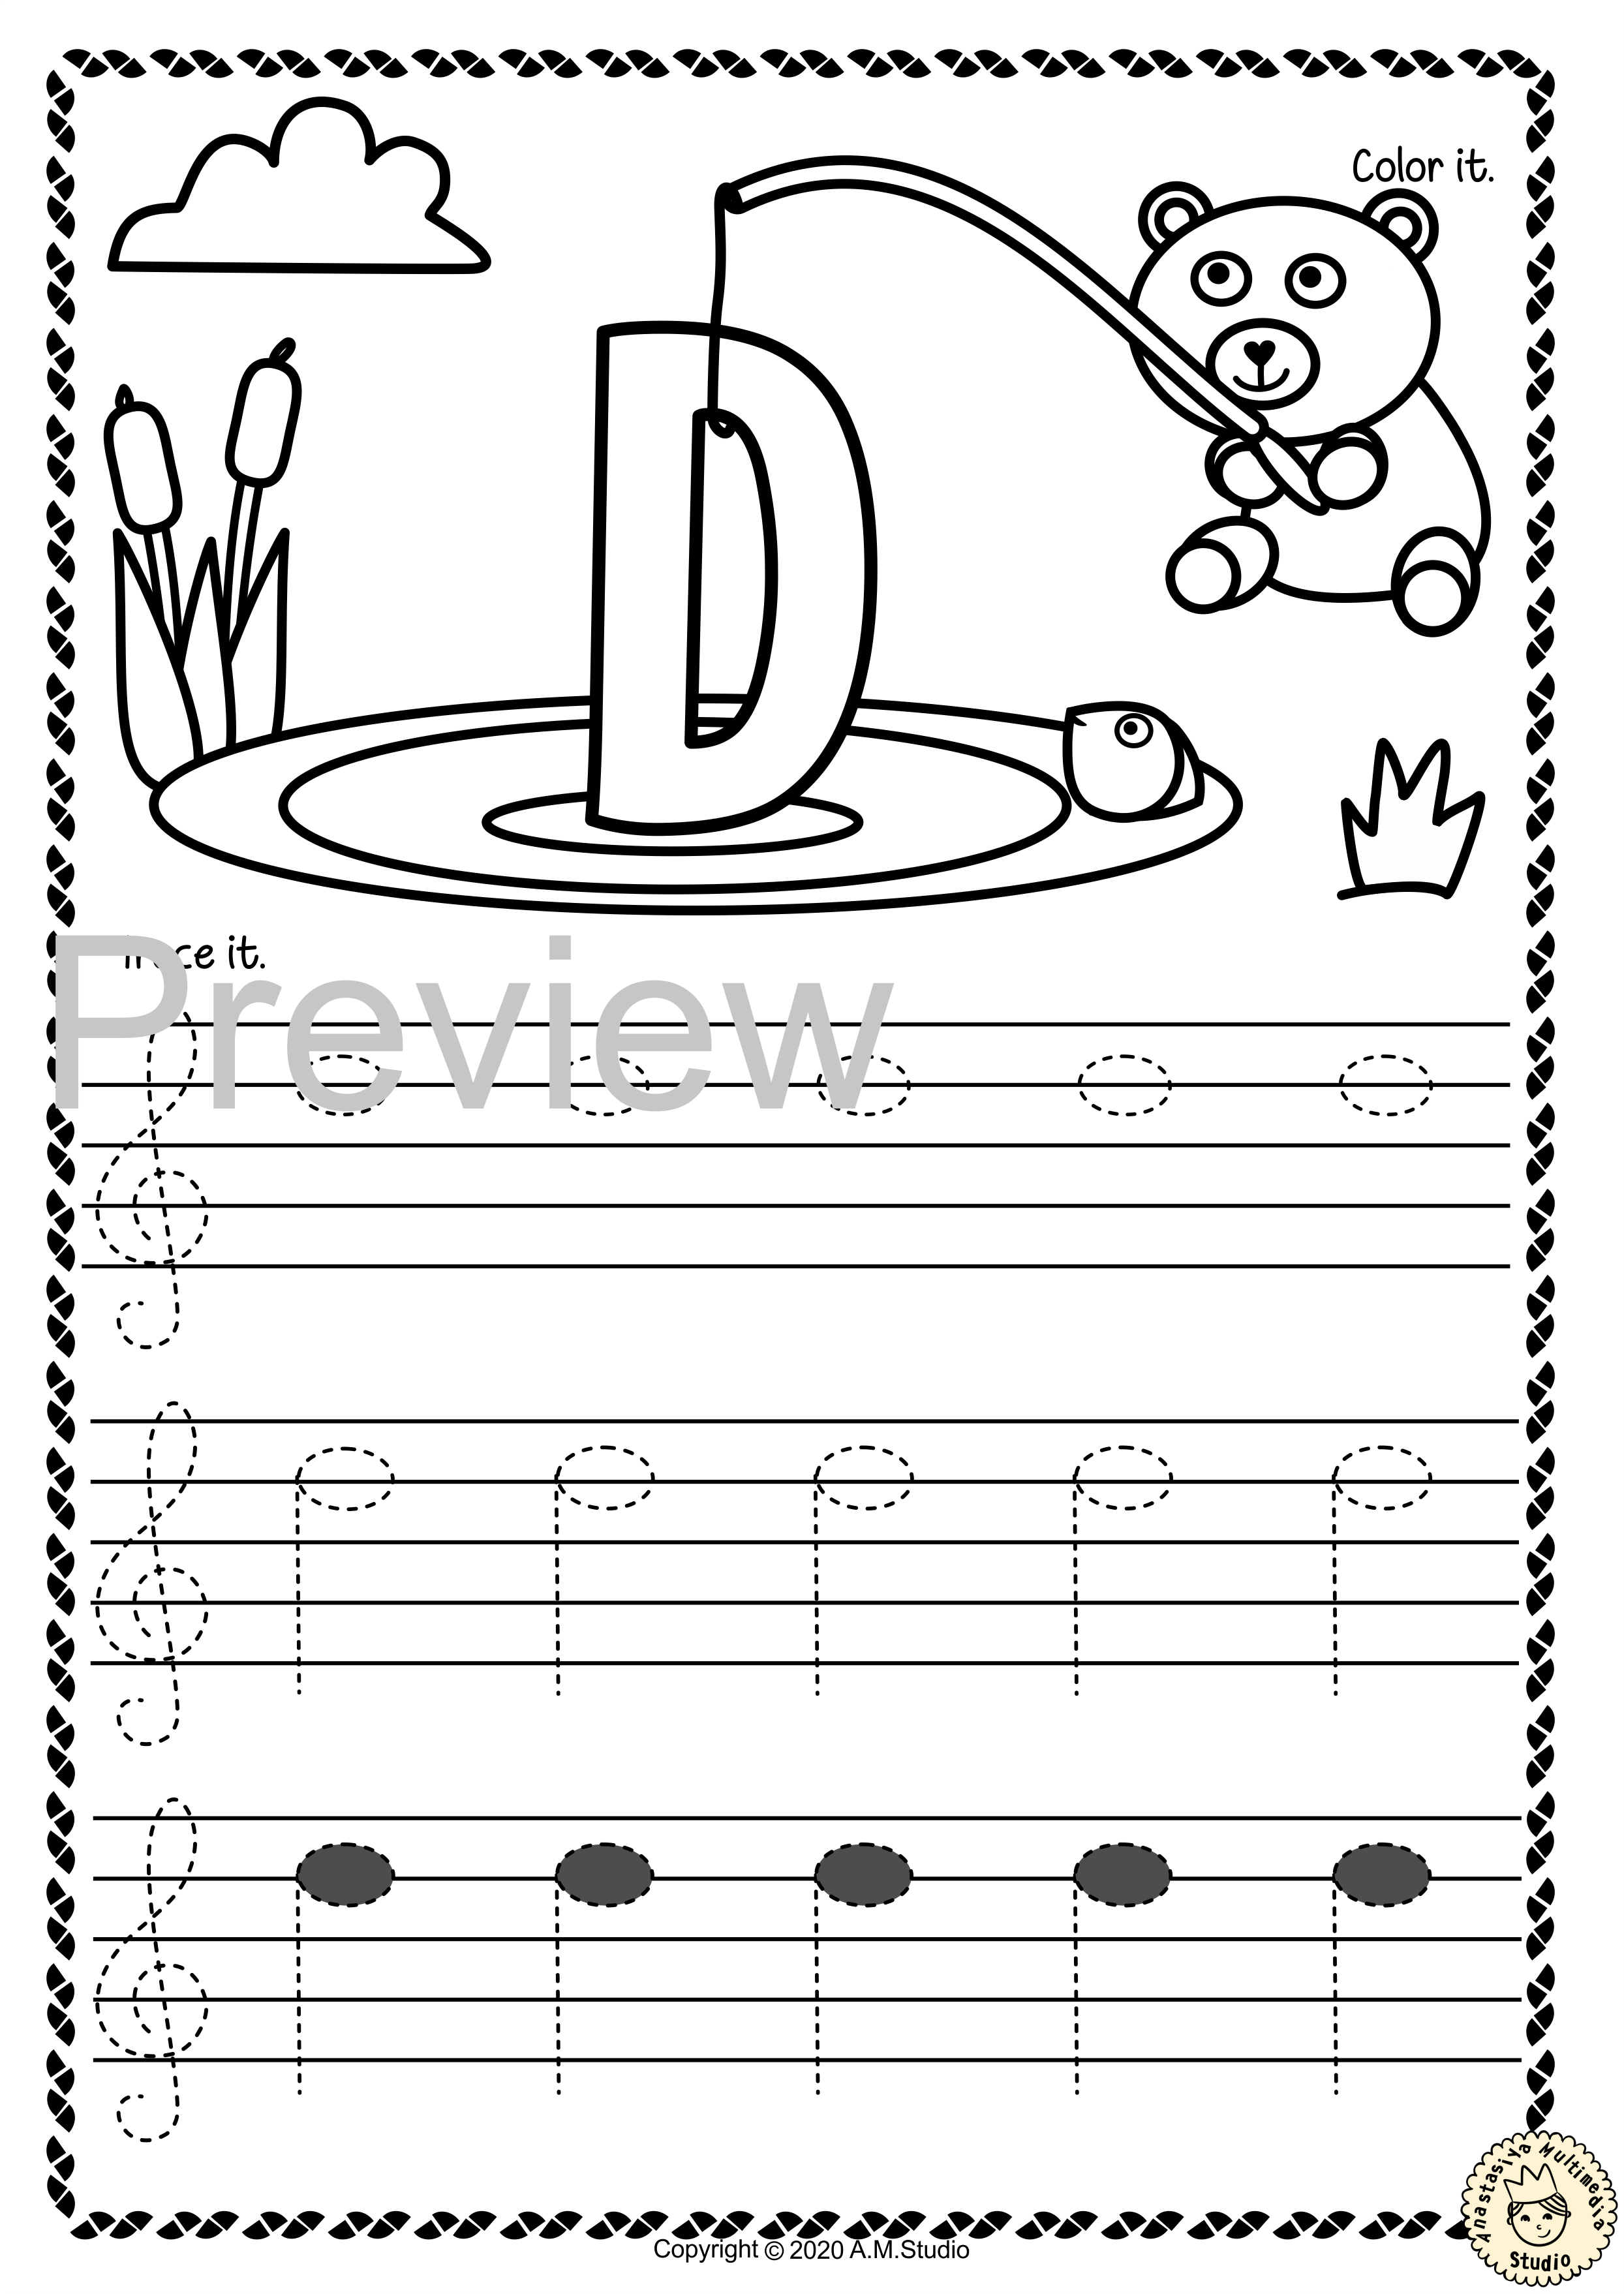 Treble Clef Tracing Music Notes Worksheets For Summer